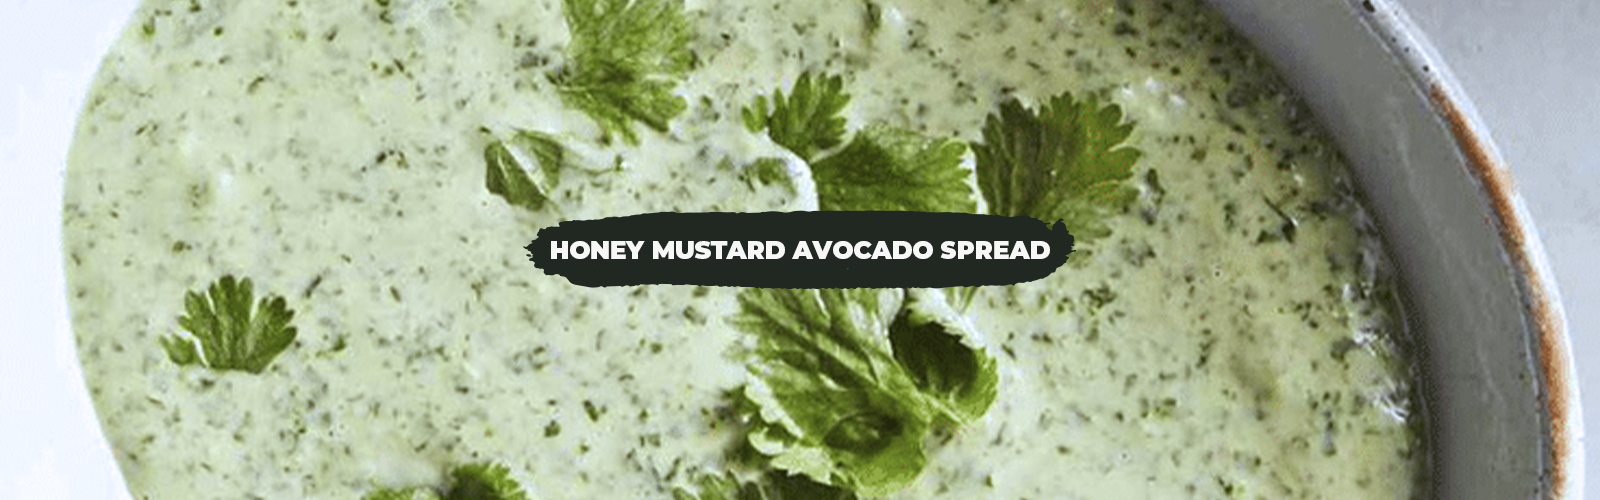 Honey Mustard Avocado Spread